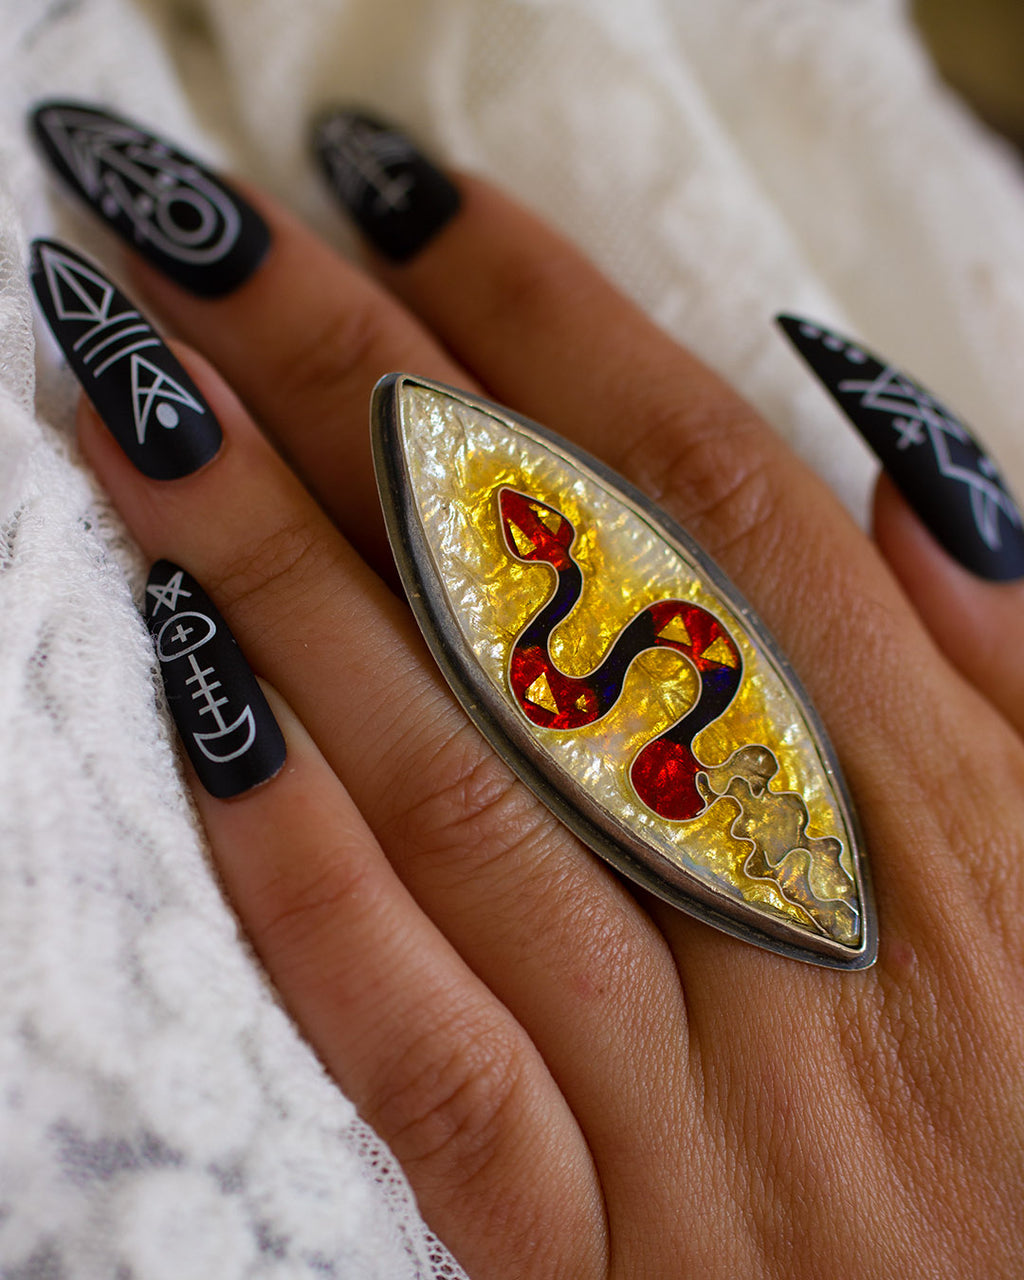 Ecdysis of the Snake Ring ~ Vitreous Cloisonne Enamel and Sterling Silver